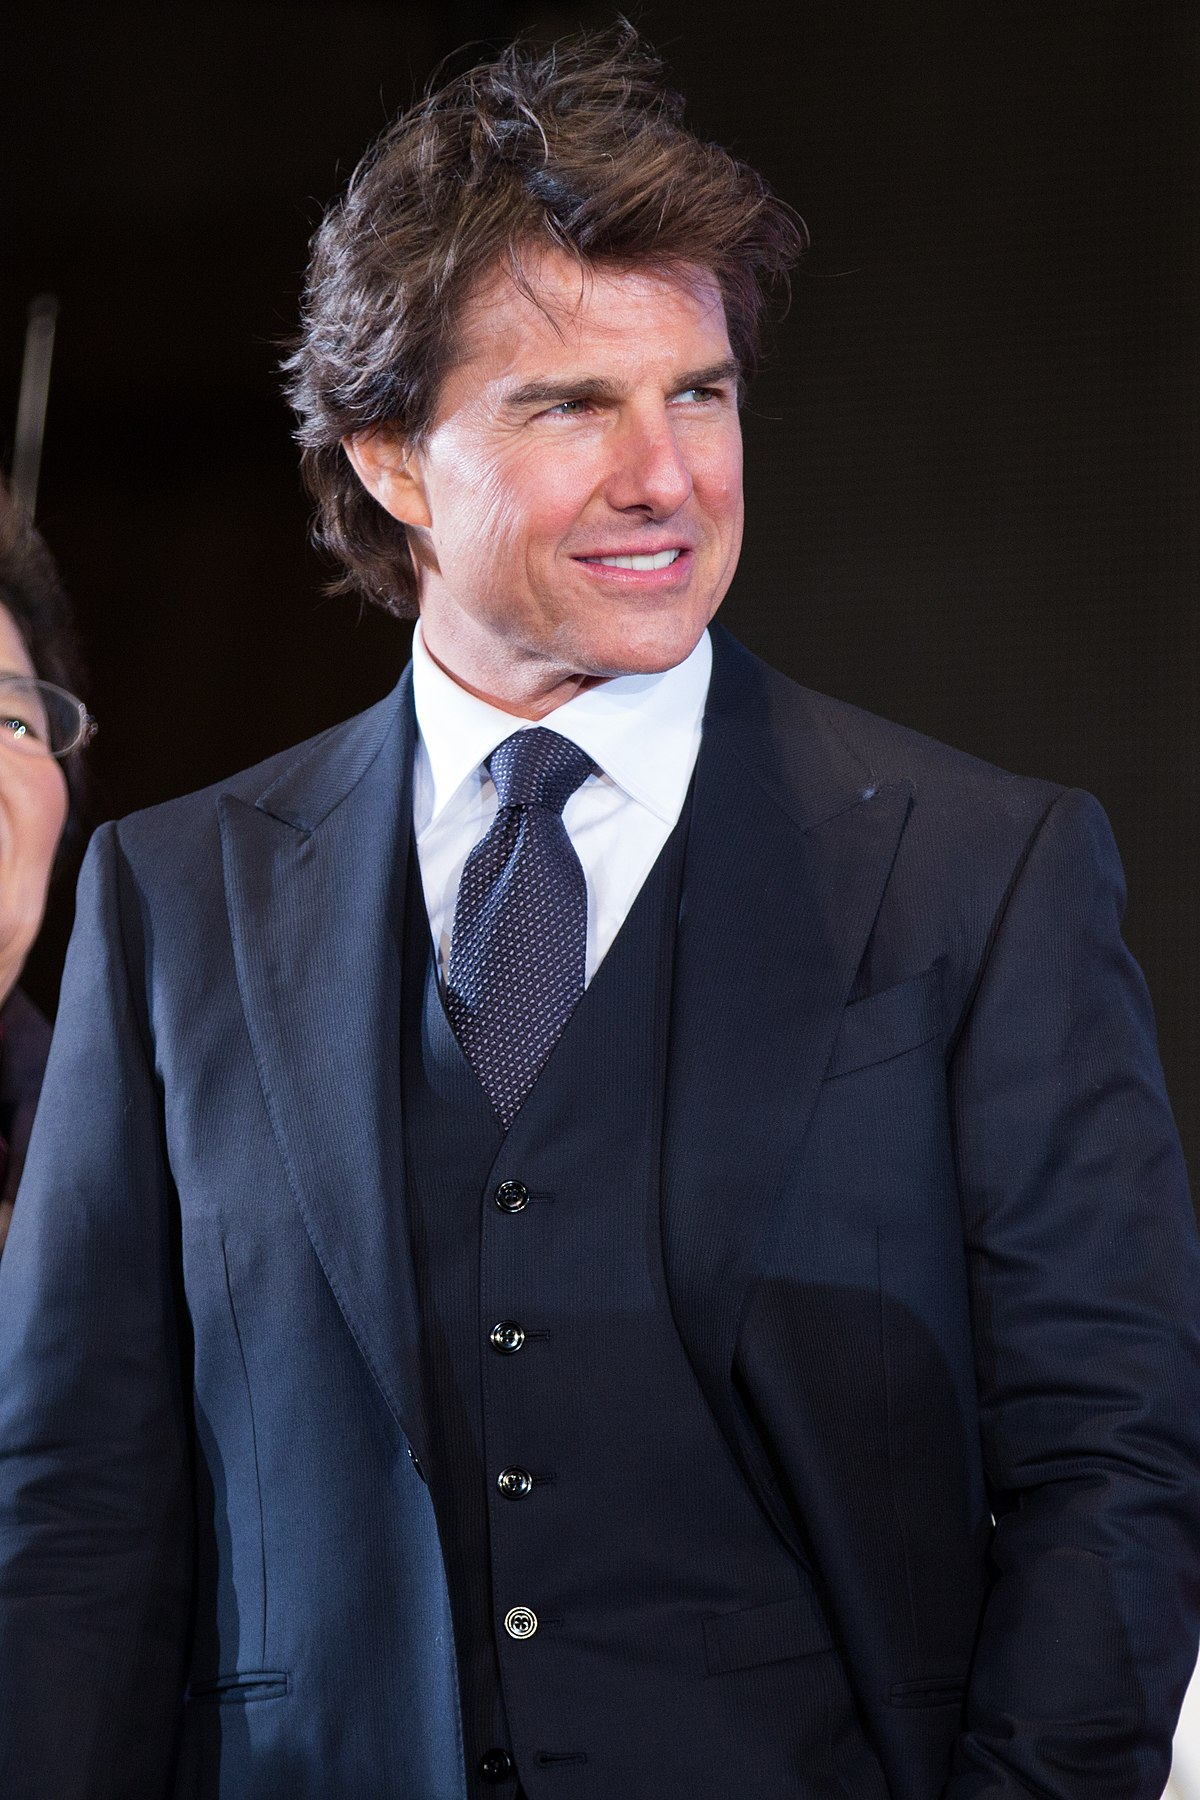 Tom Cruise at an event for Jack Reacher: Never Go Back (2016)